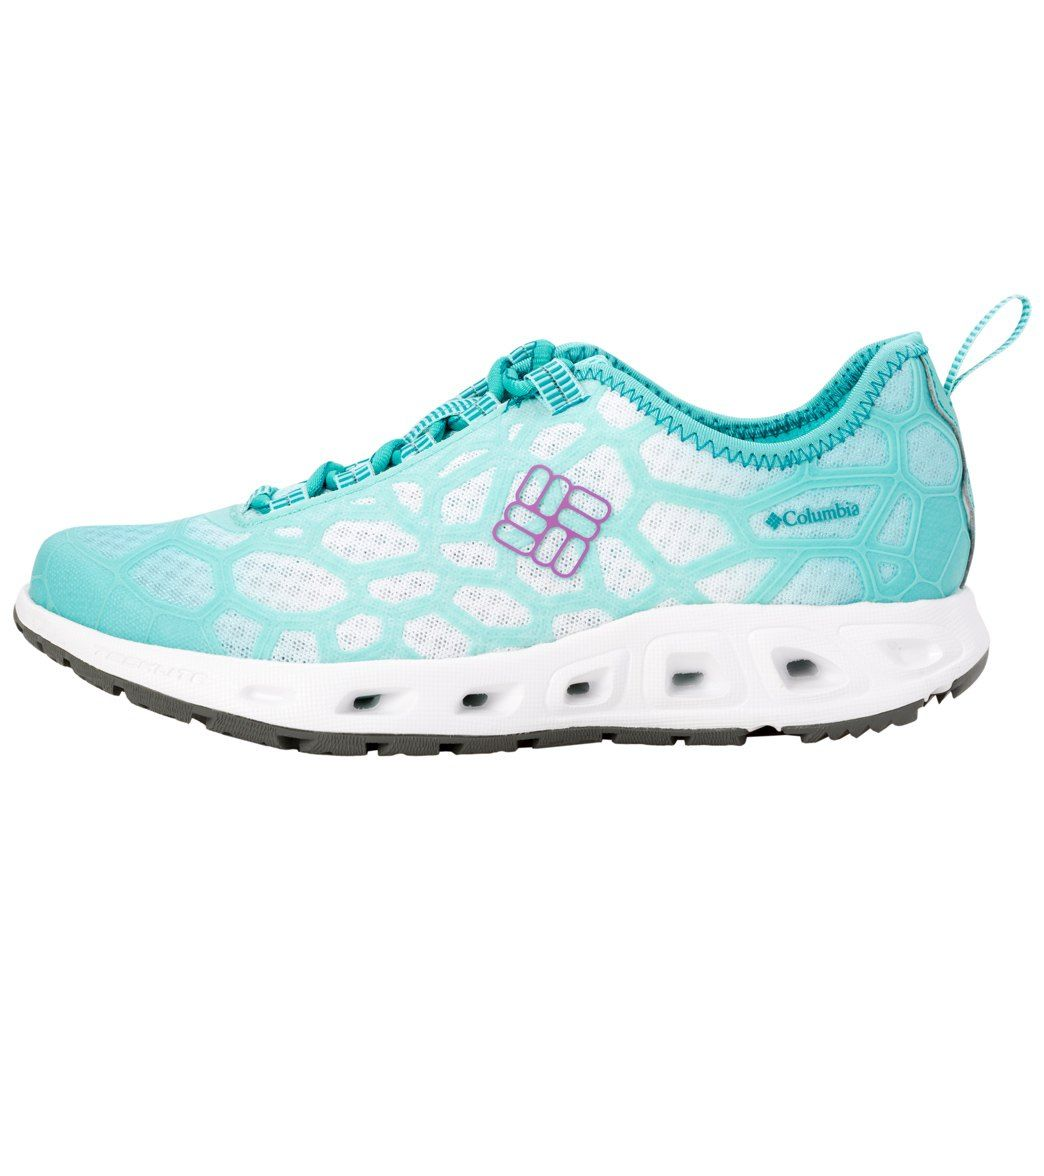 1fb8525be030 Columbia Footwear Women s Megavent Water Shoes at SwimOutlet.com - Free  Shipping